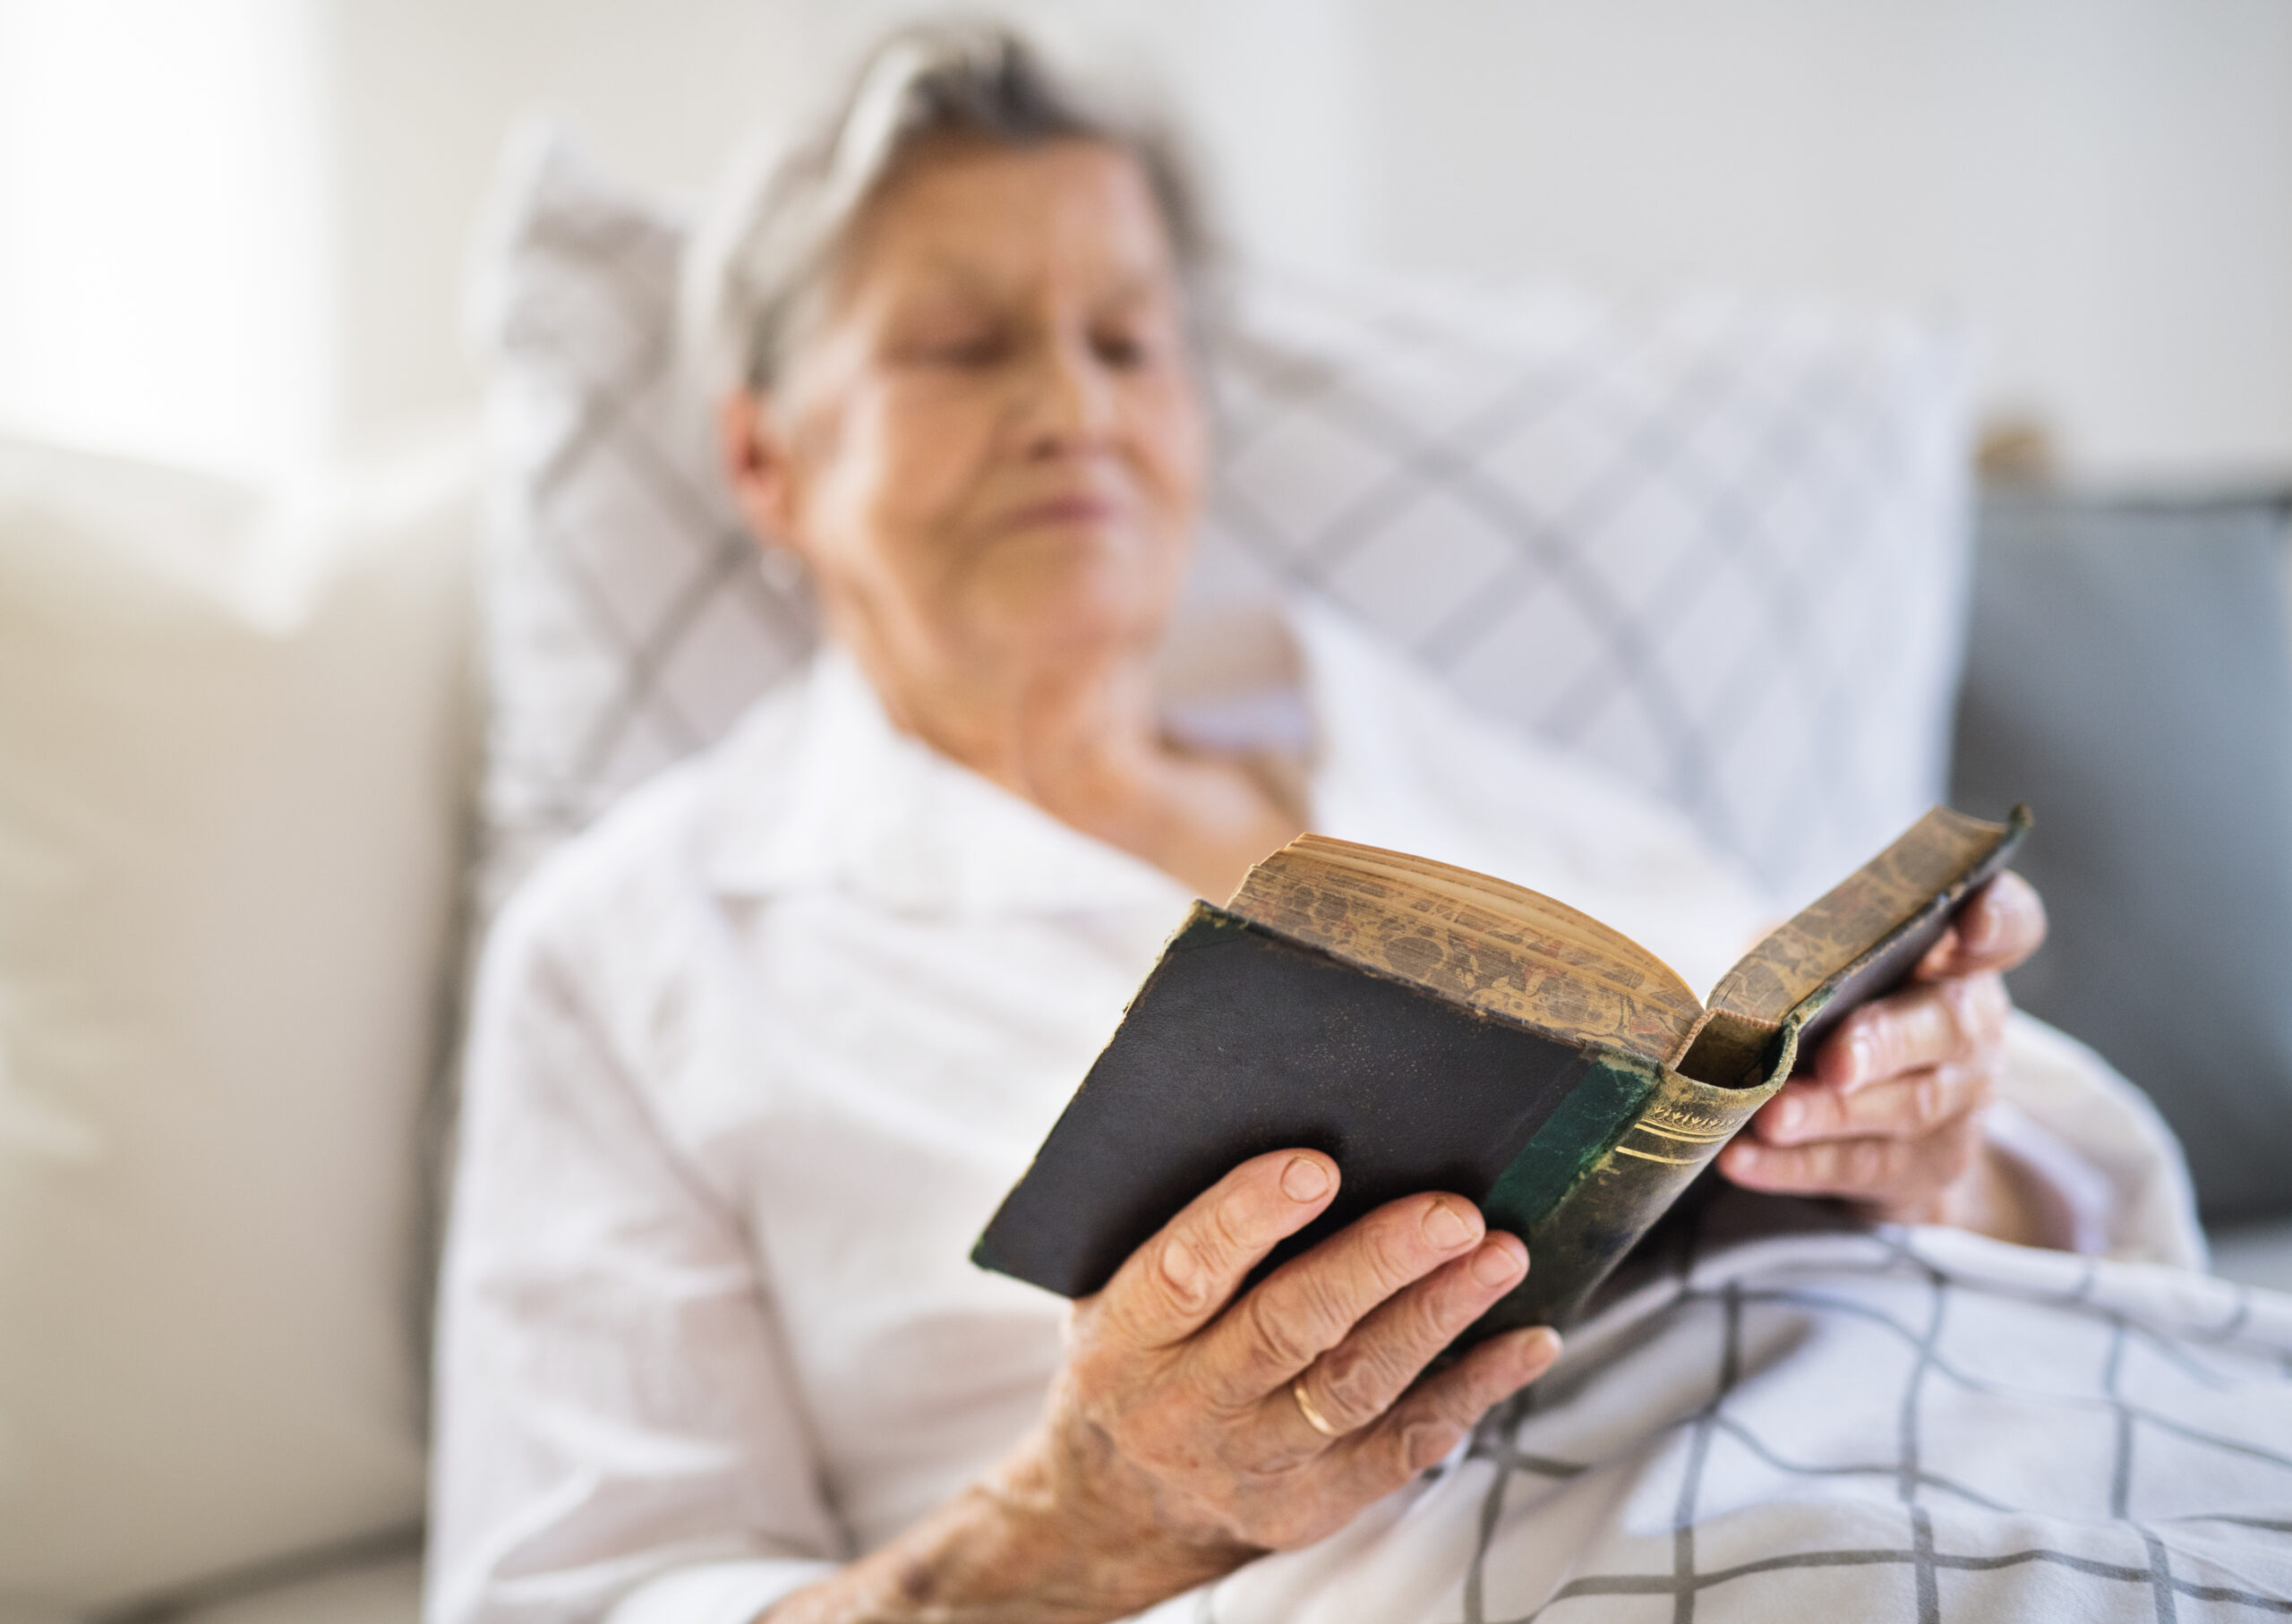 Sick senior woman reading bible book in bed at home or in hospital.